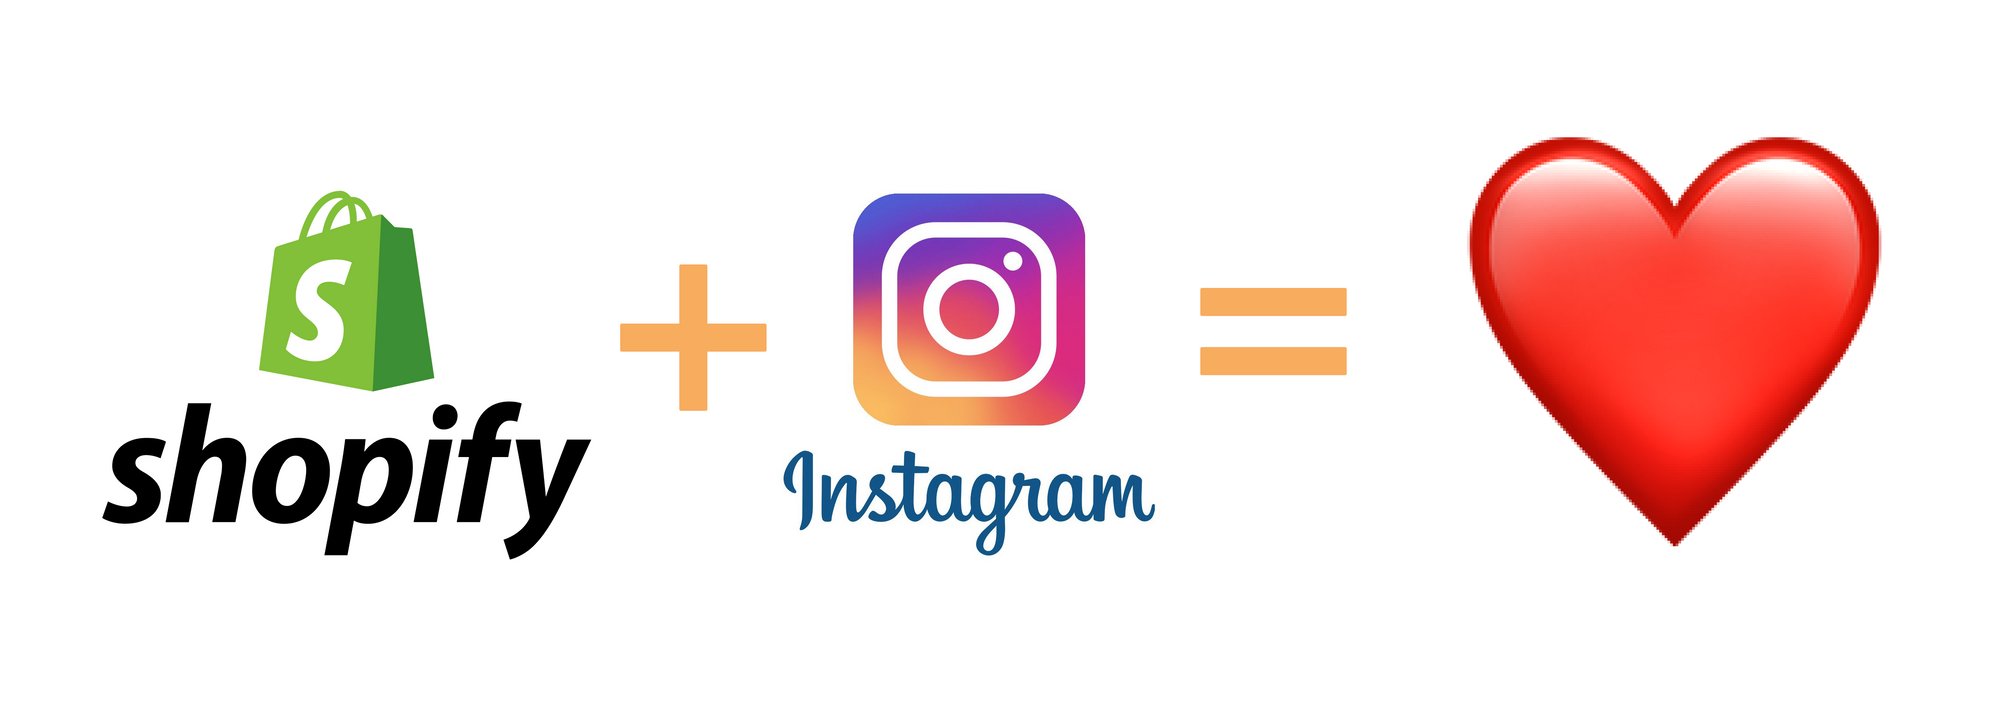 Selling on Instagram with Shopify